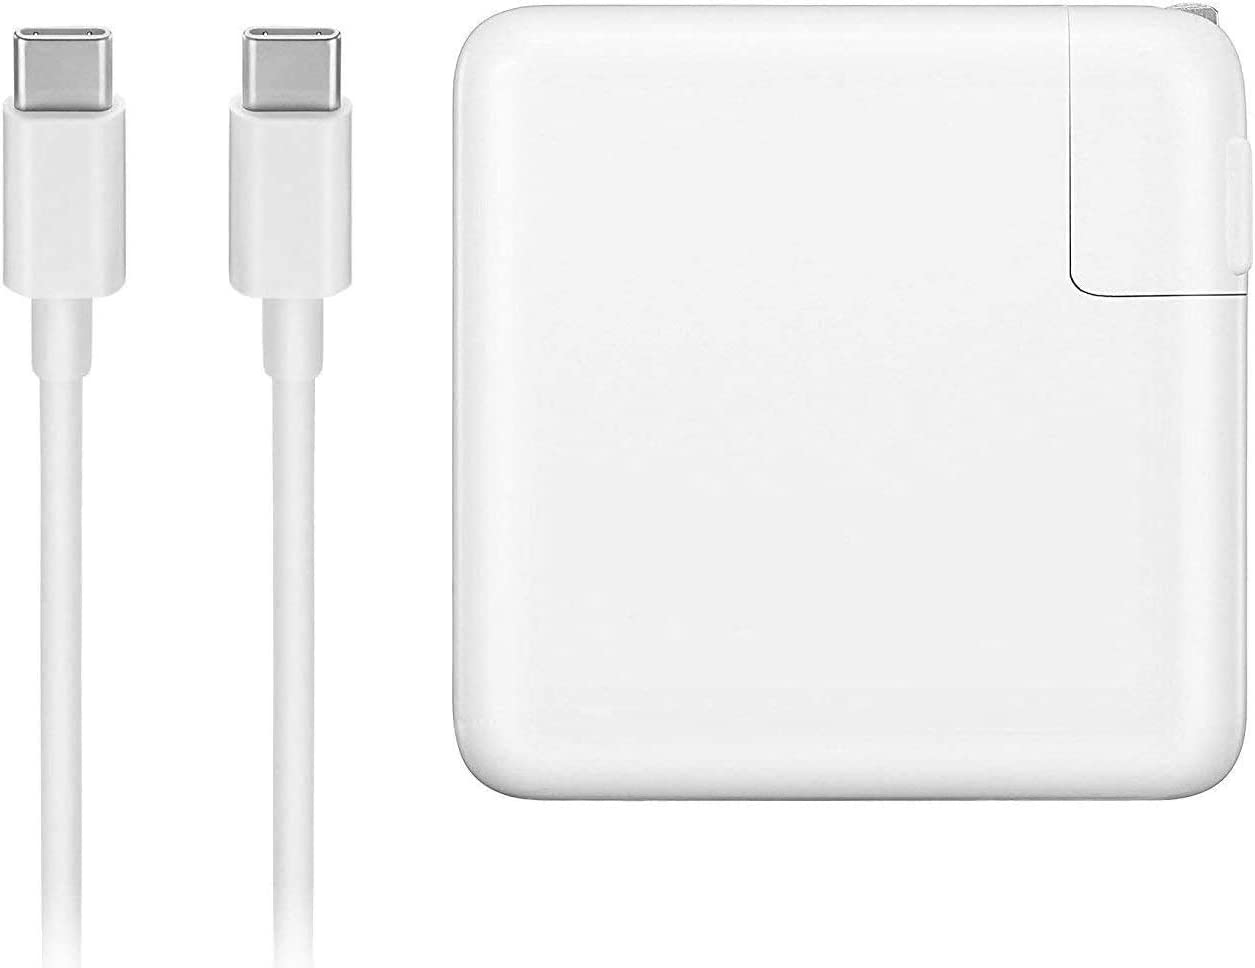 96W USB C Power Adapter Charger with USB-C Cable for 2019 MacBook Pro 16 inch 15 inch 13 inch, 2018 MacBook Air Retina 16 inch and More